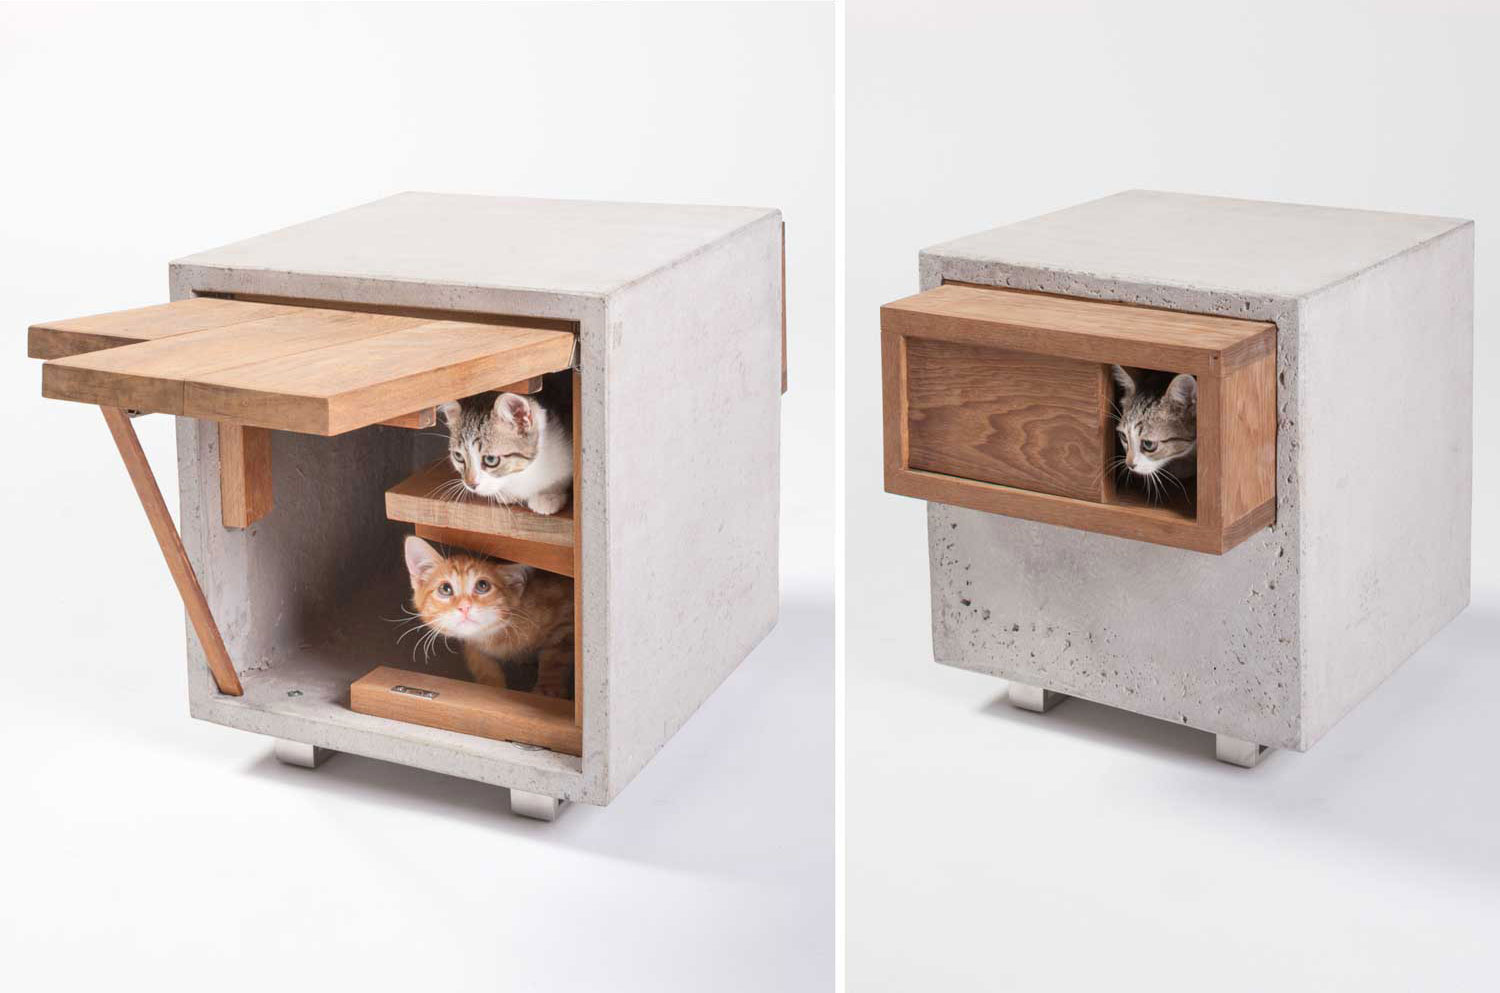 Animal Shelters by Standard architecture Design | Yellowtrace